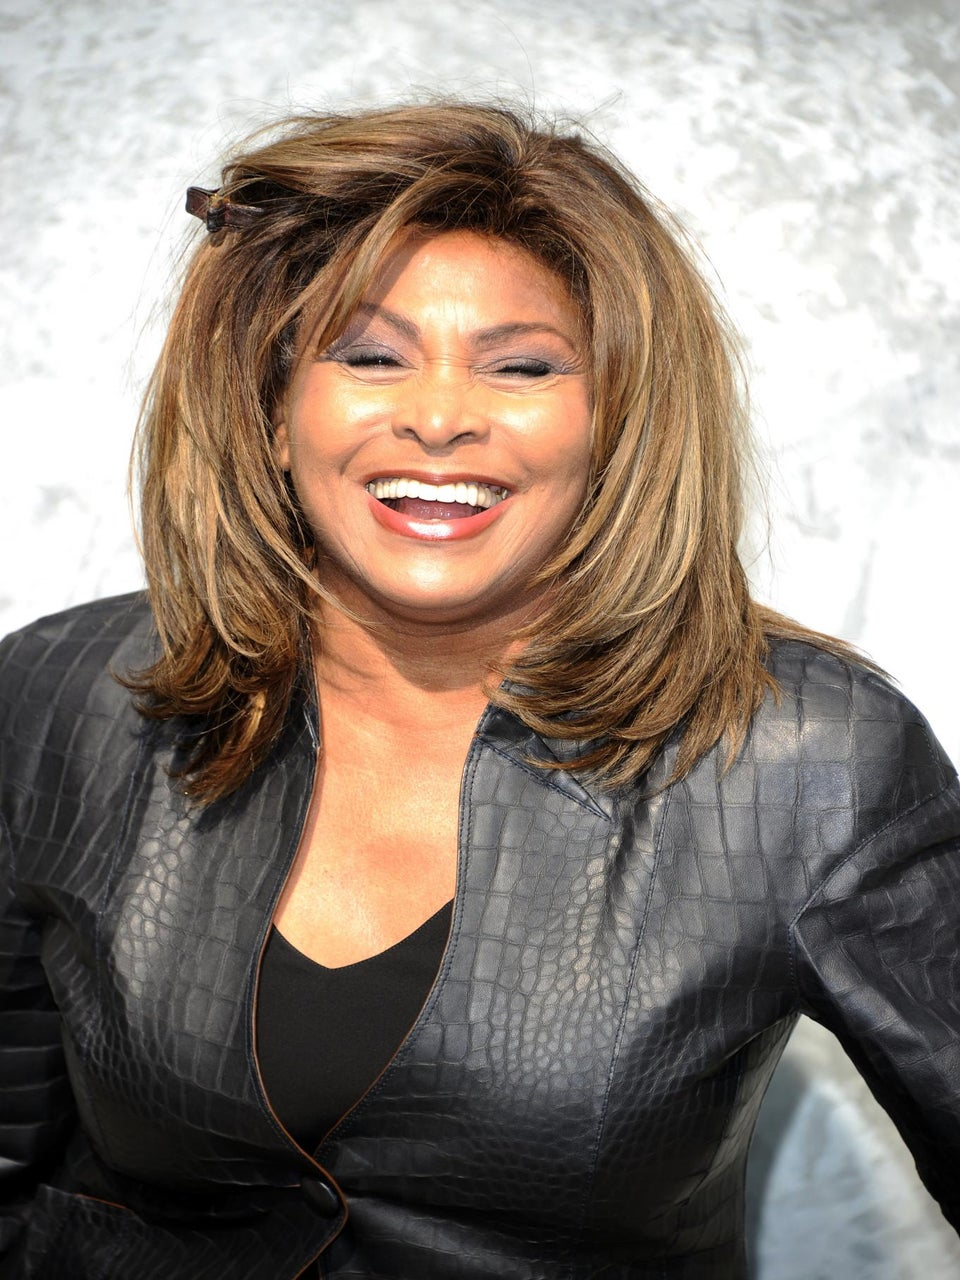 Tina Turner Achieves New Kind of Happiness at 73